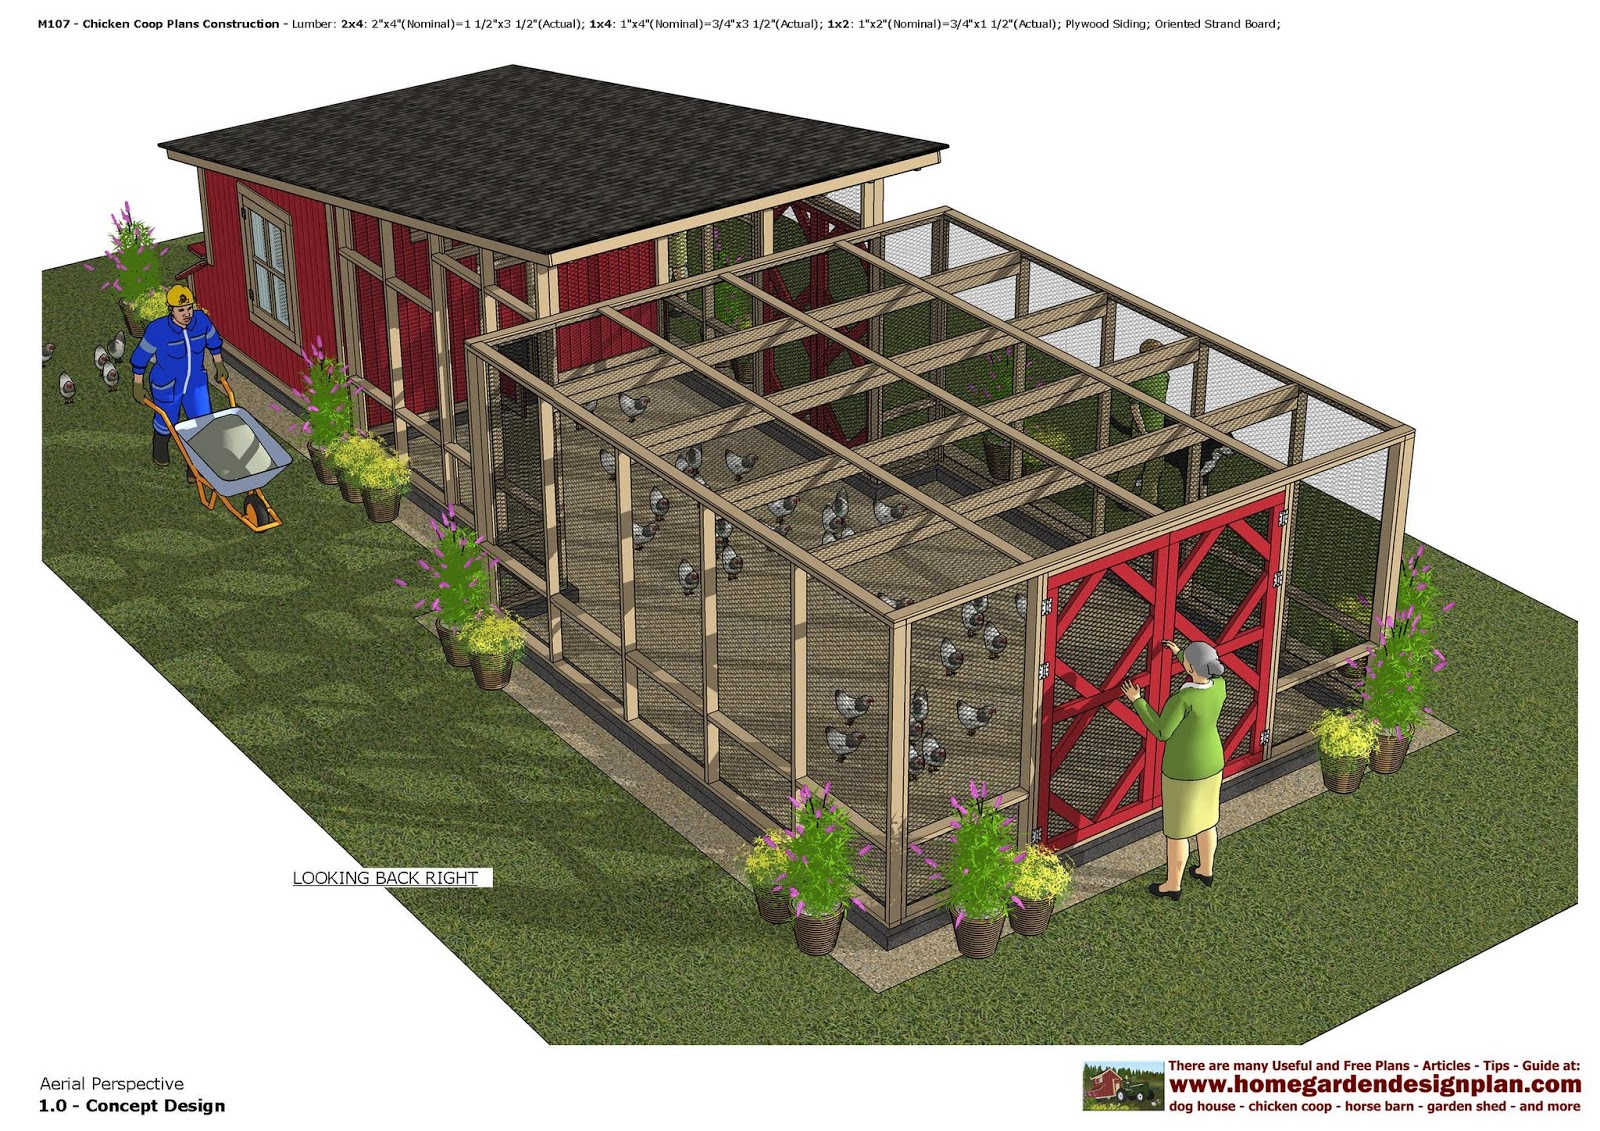 m107 chicken coop plans construction chicken coop design how to build a chicken coop - Chicken Co Op Plans And Greenhouse